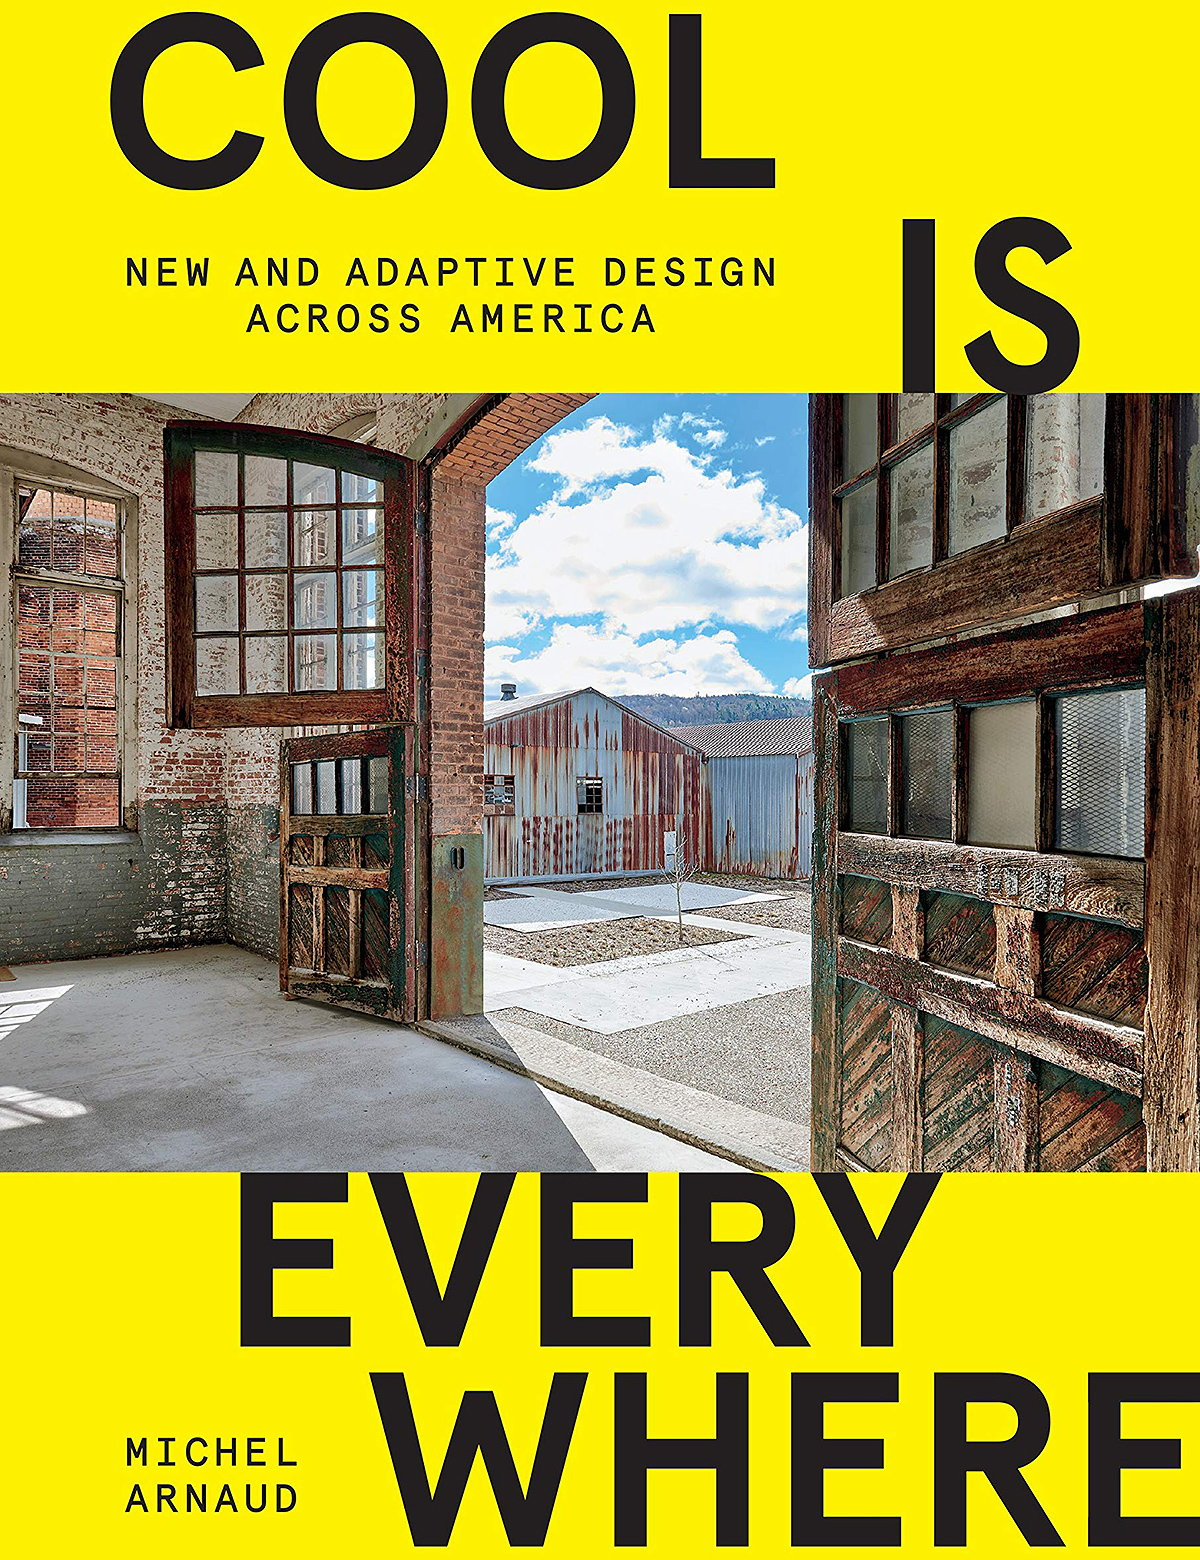 Cool is Everywhere - New and Adaptive Design Across America